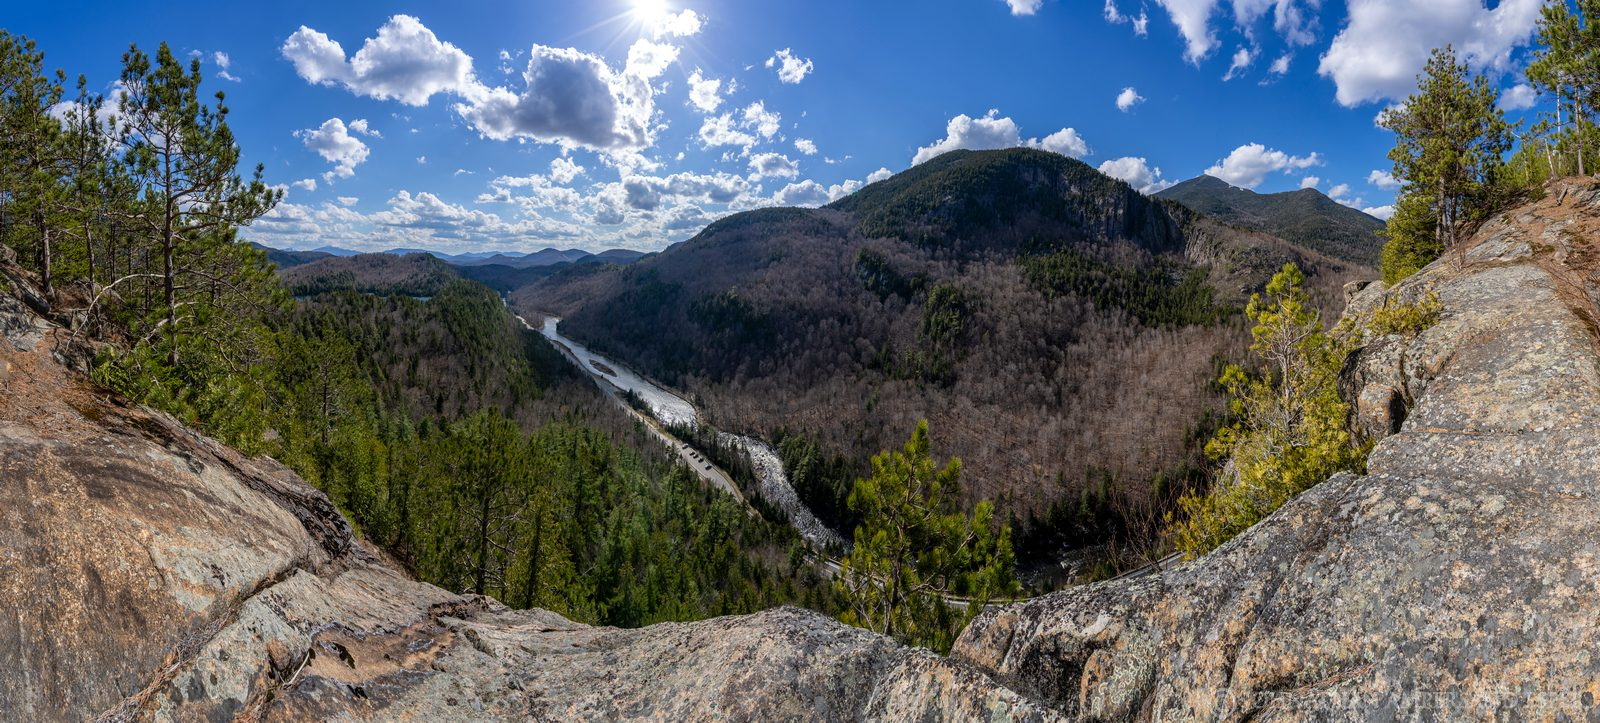 Notch Mountain,Notch Mt,Wilmington Notch,sunny,spring,day,cliffs,bushwack,Ausable River,panorama,Whiteface Mt,Whiteface Mountain...